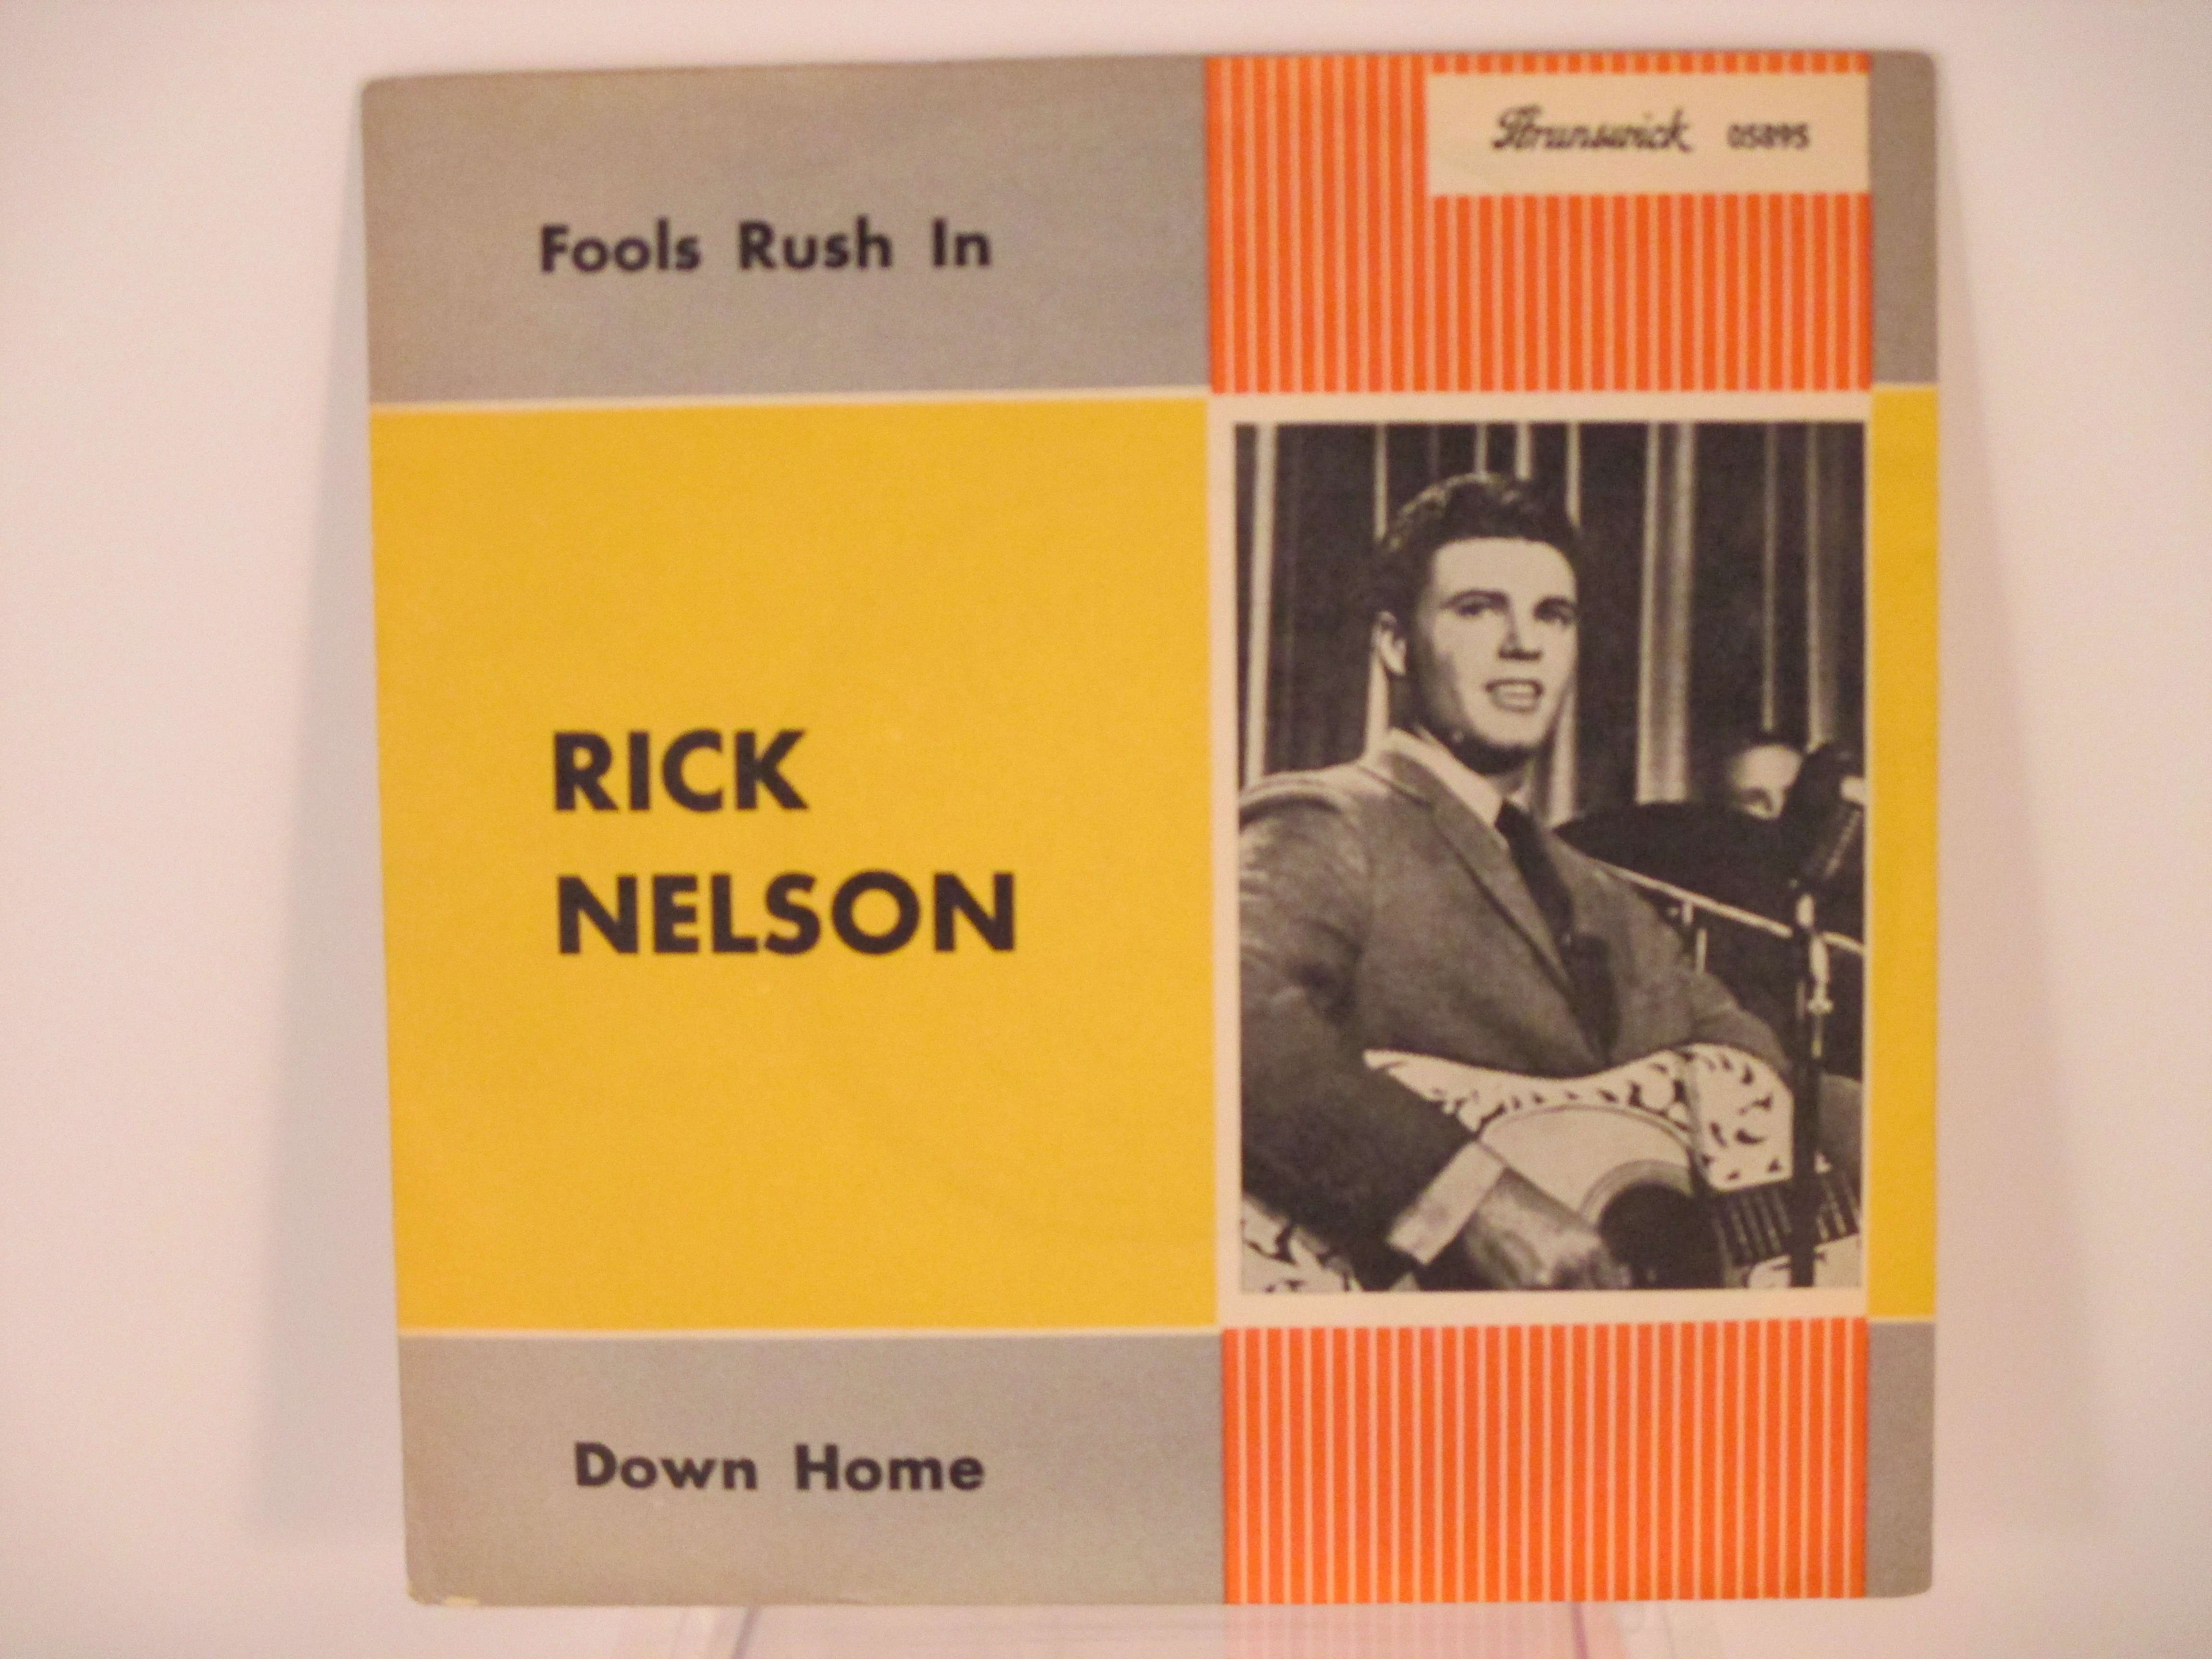 RICKY NELSON : Fools rush in / Down home